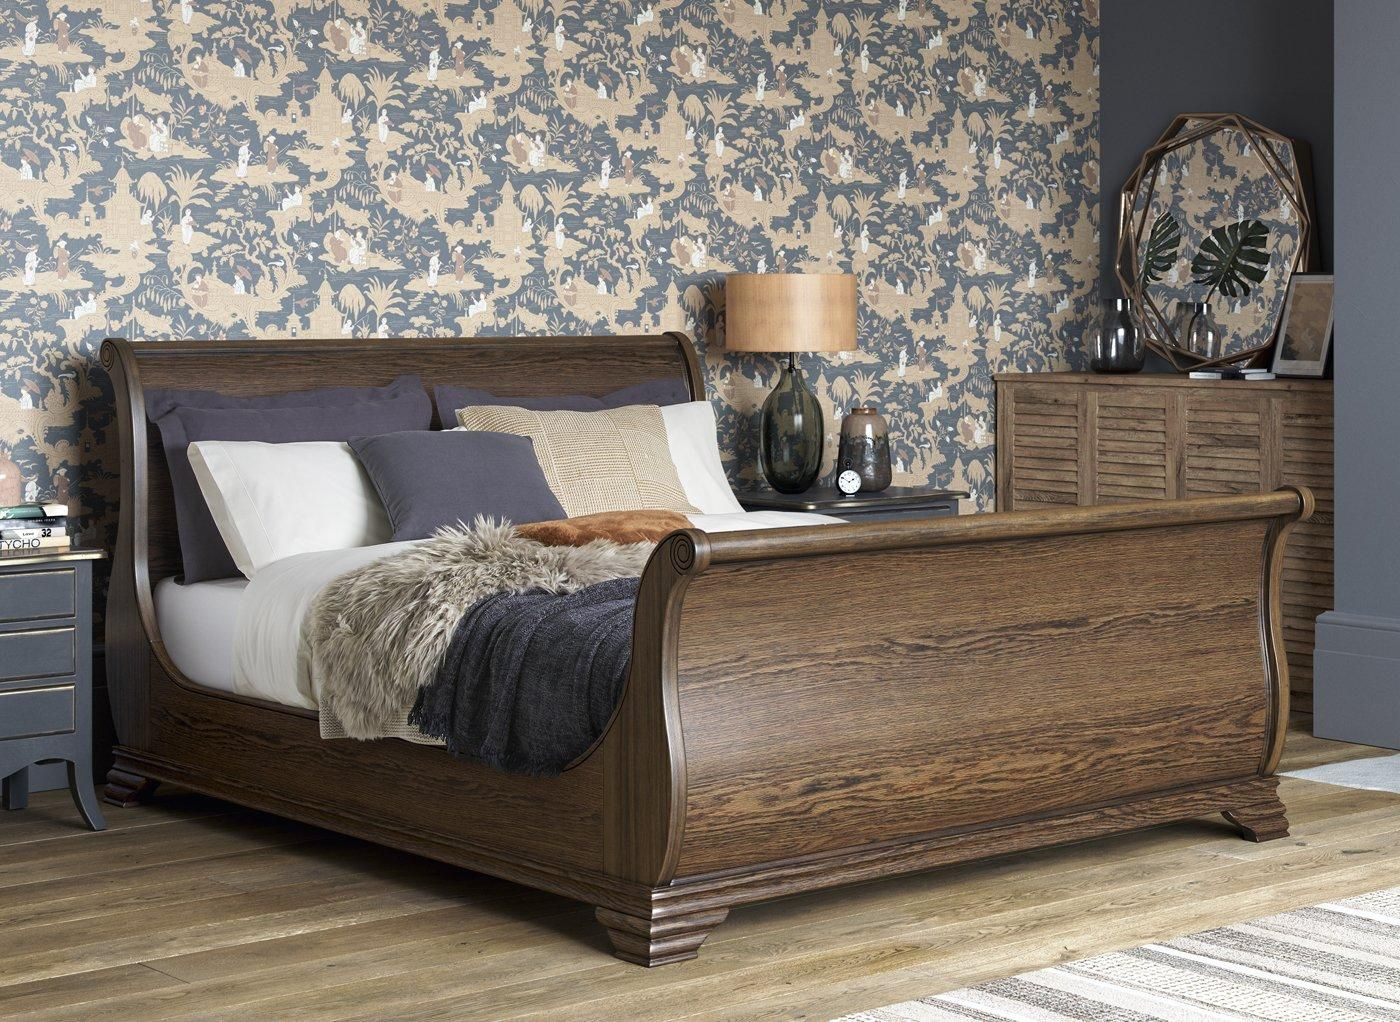 Otis Pine Wooden Bed Frame 5'0 King Size Dreams in